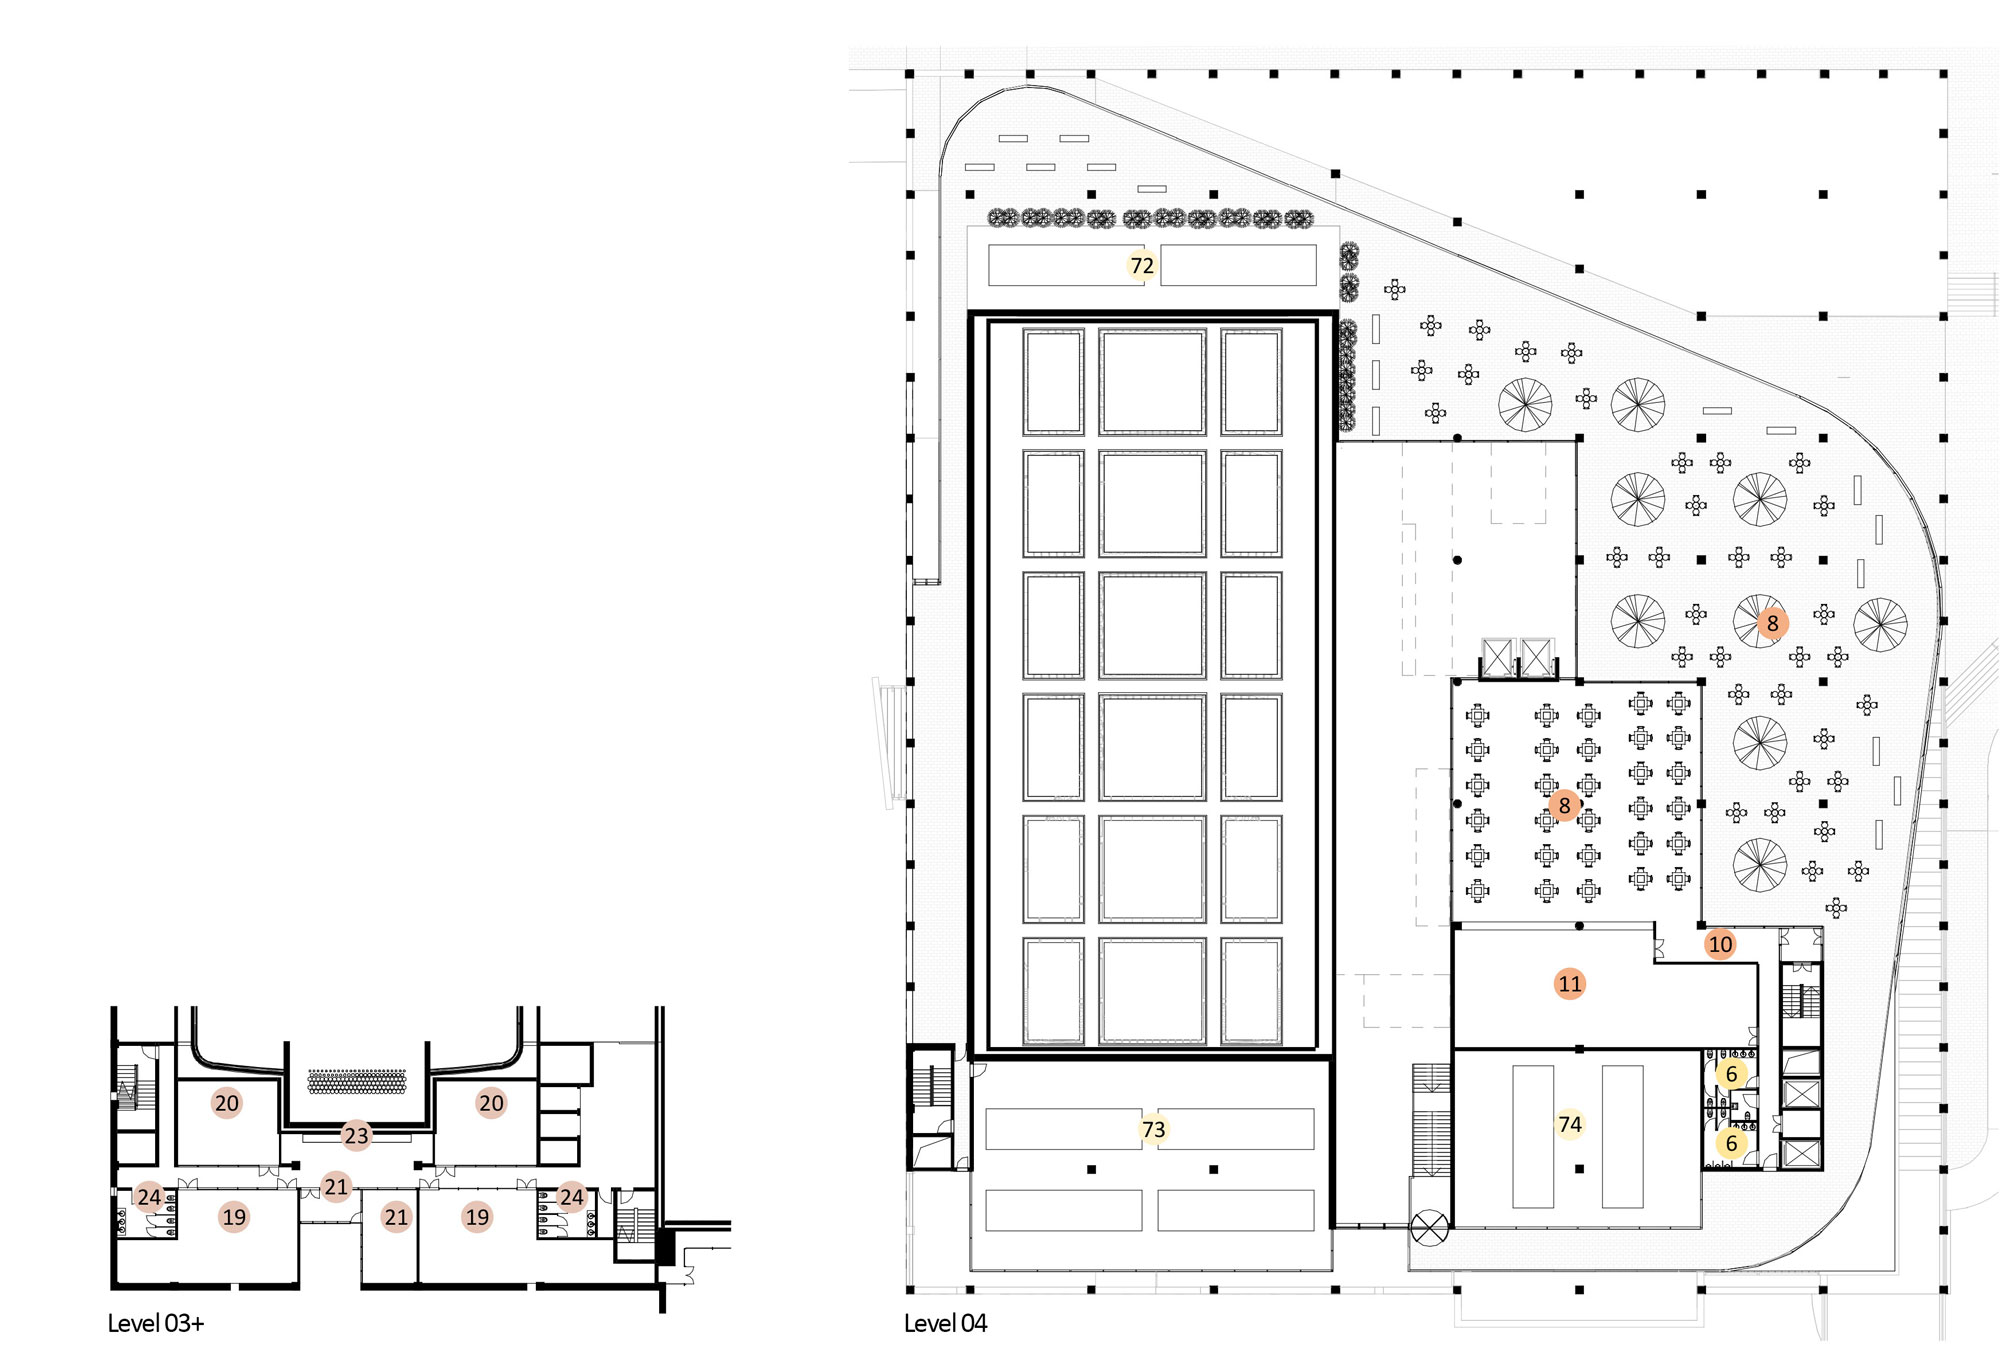 AR_Architecture_National_concert_hall_Sketches&Plans_014